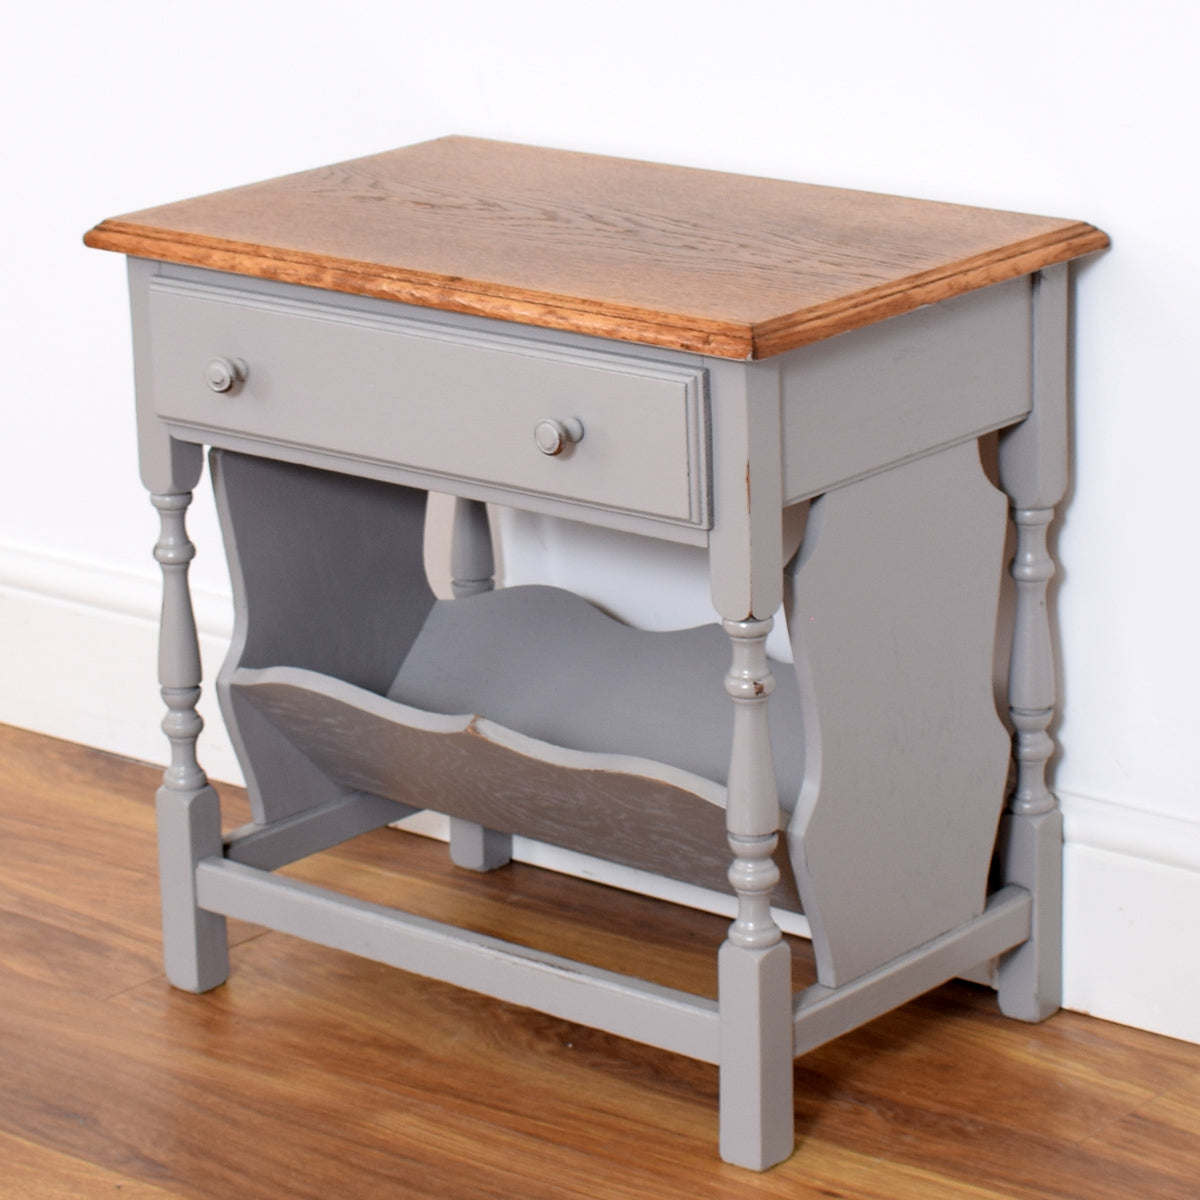 Painted Magazine Rack / Side Table